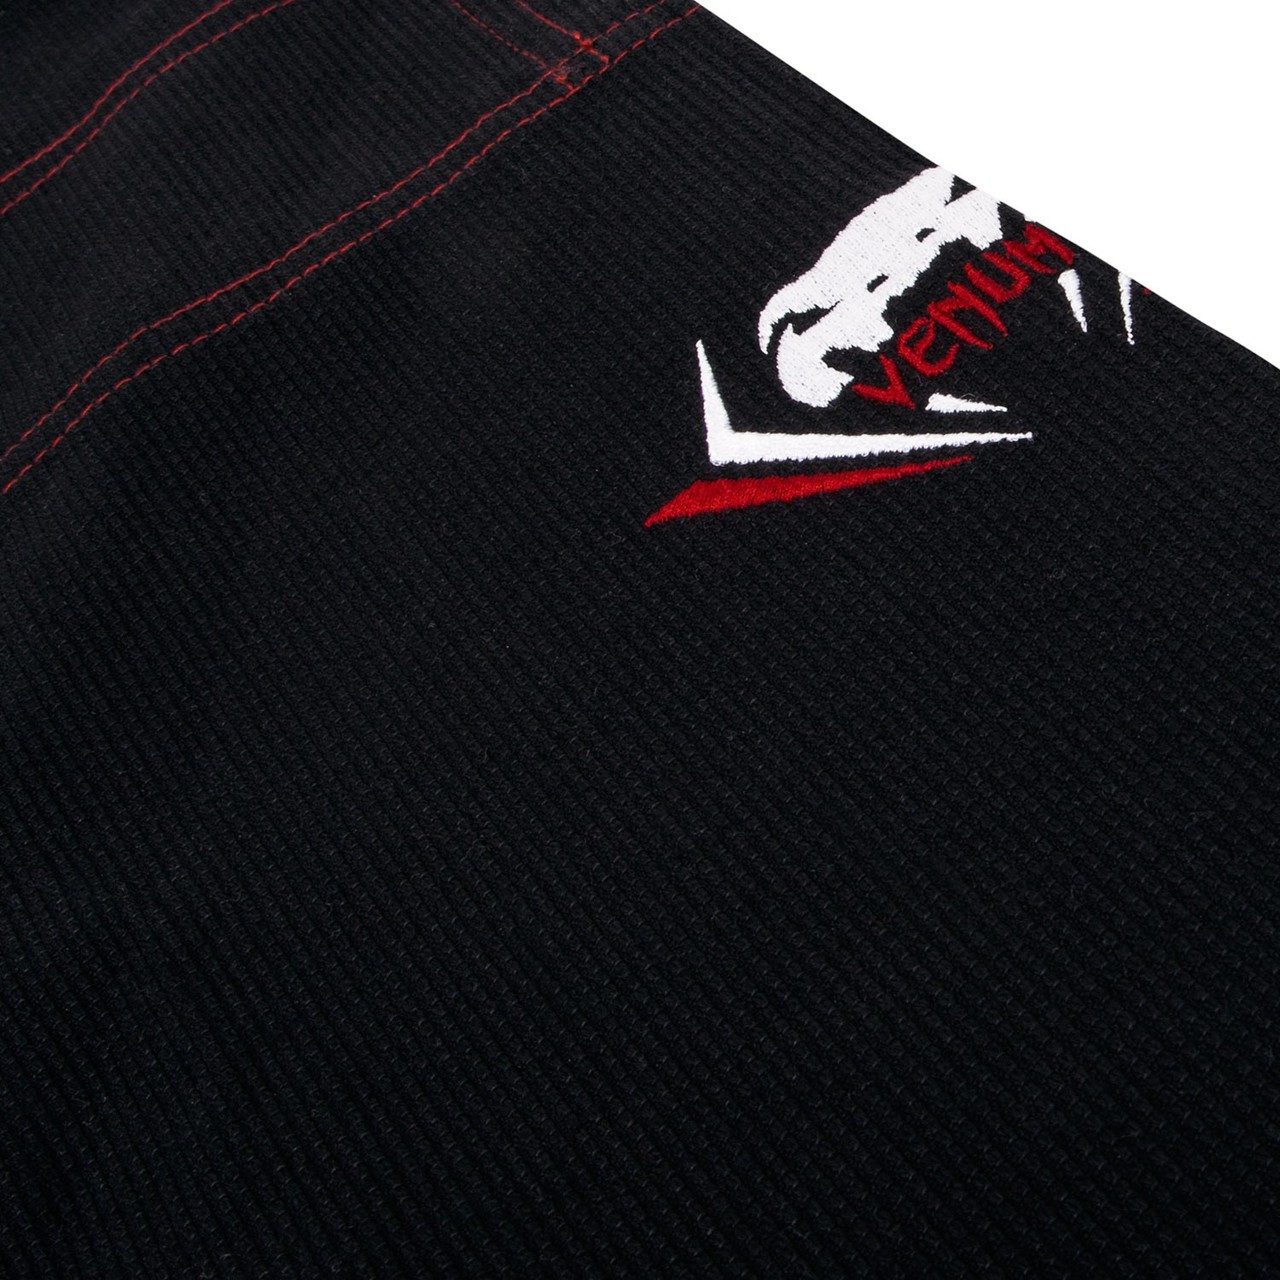 logo on the Venum Elite Light BJJ GI in Black is now available at www.thejiujitsushop.com  Enjoy Free Shipping from The Jiu Jitsu Shop today!